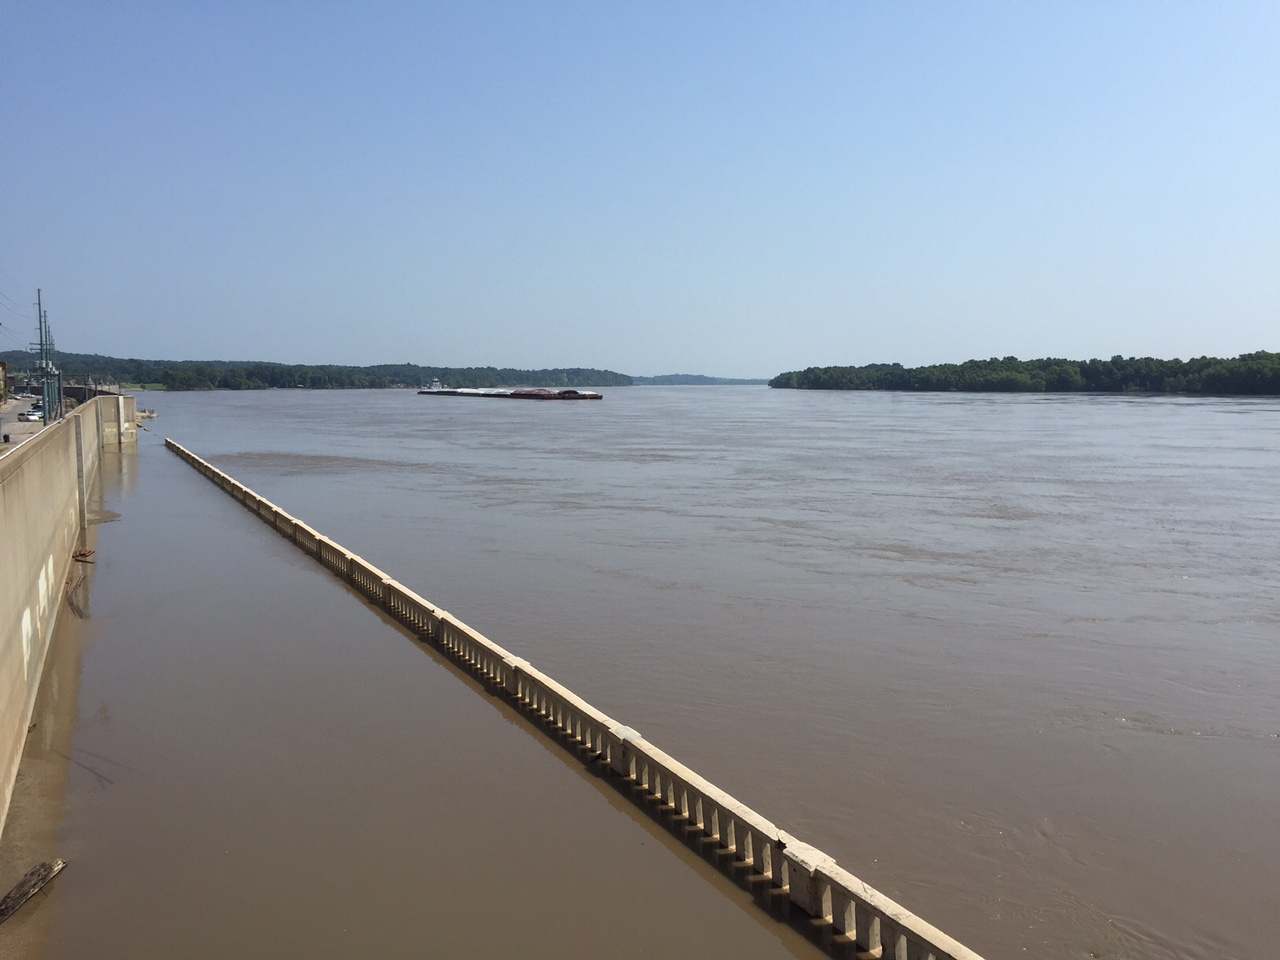 Feb-Mar 2019 Mississippi River Flood Impacts